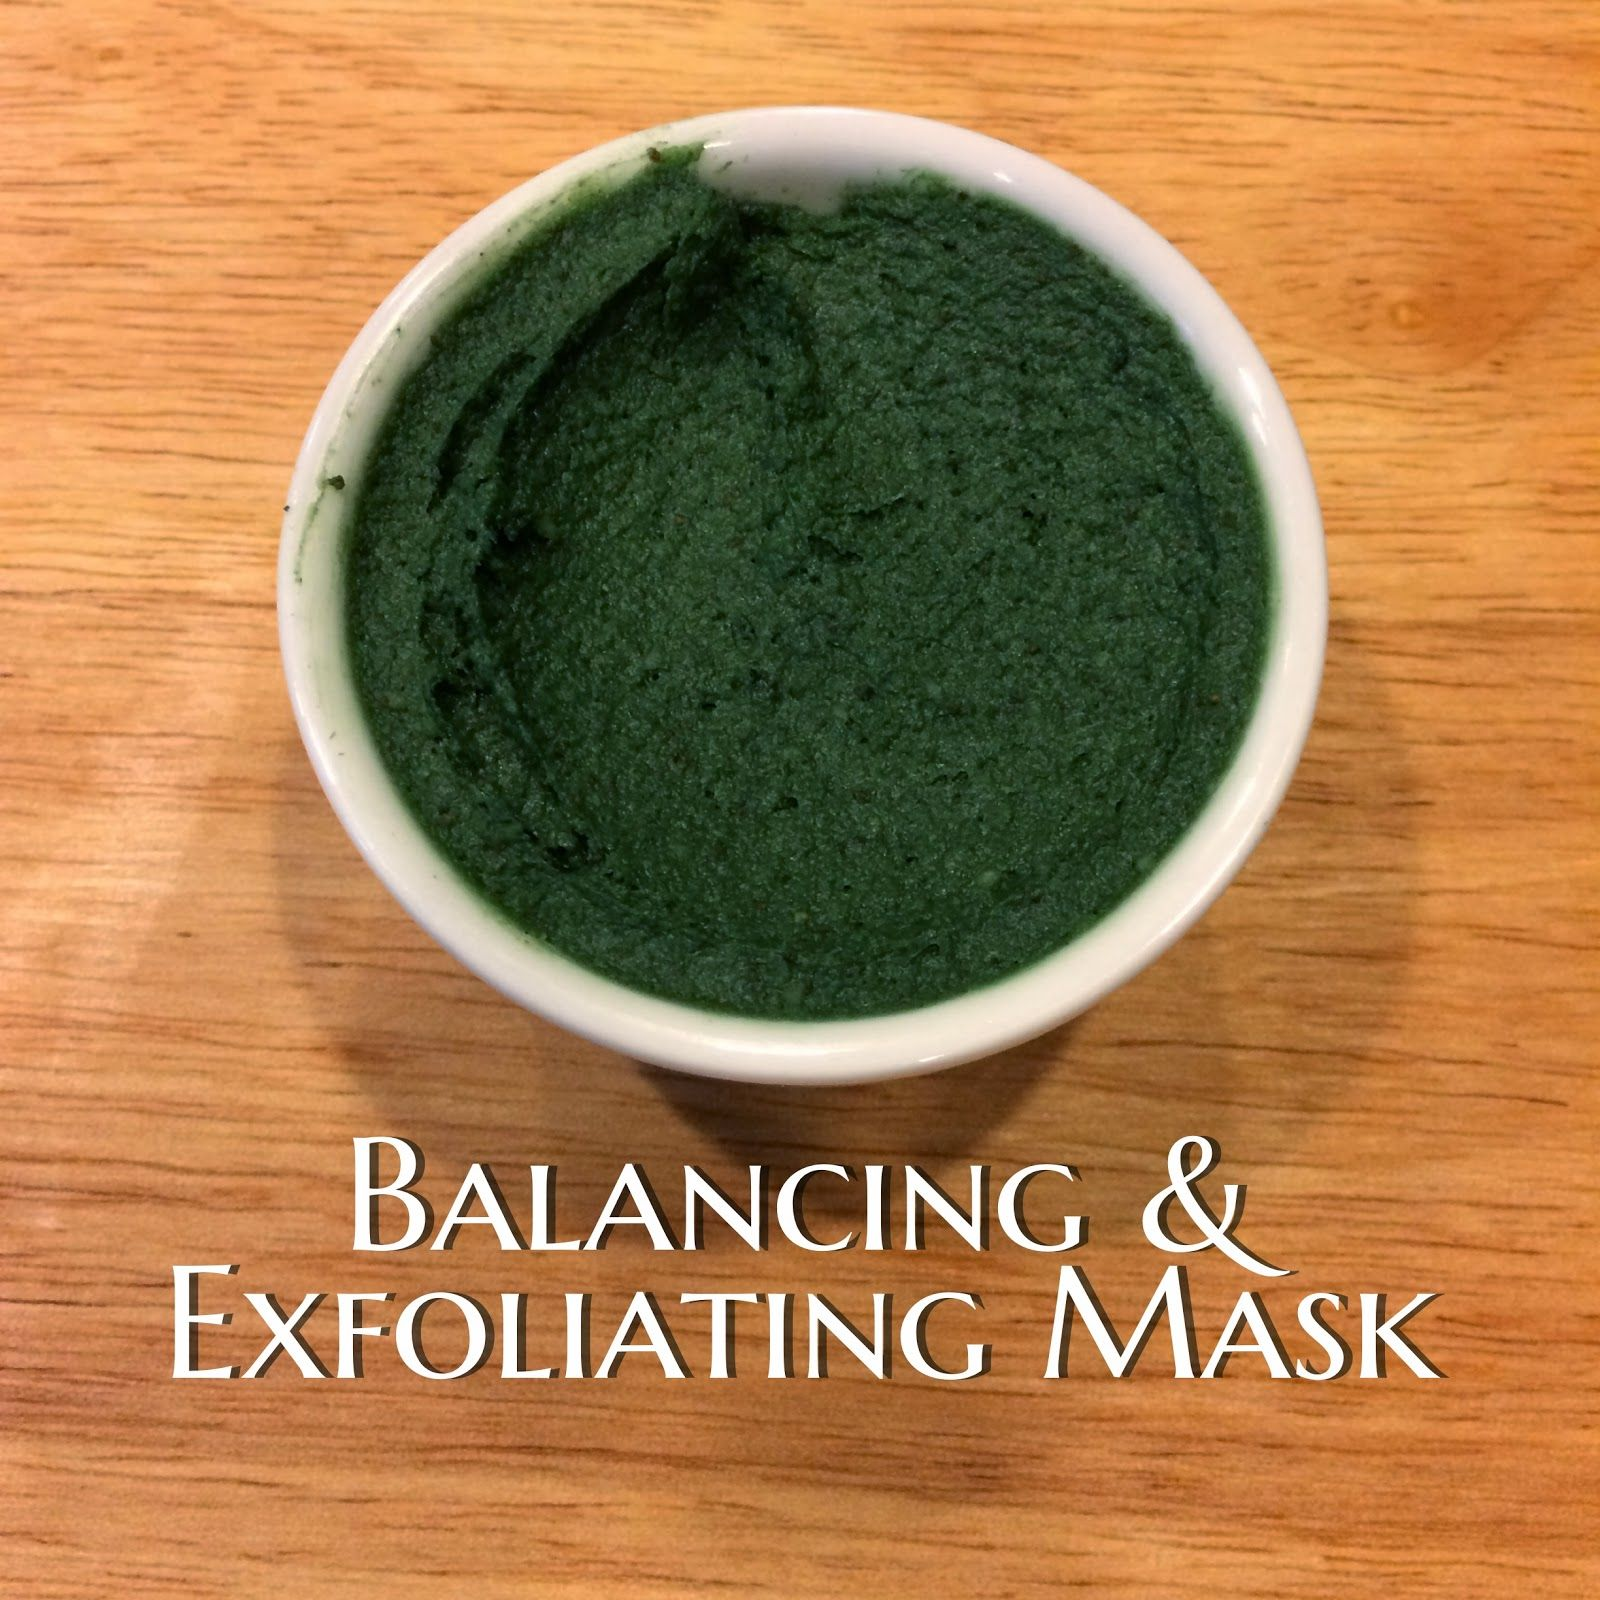 Balancing and Exfoliating Mask for All Skin Types